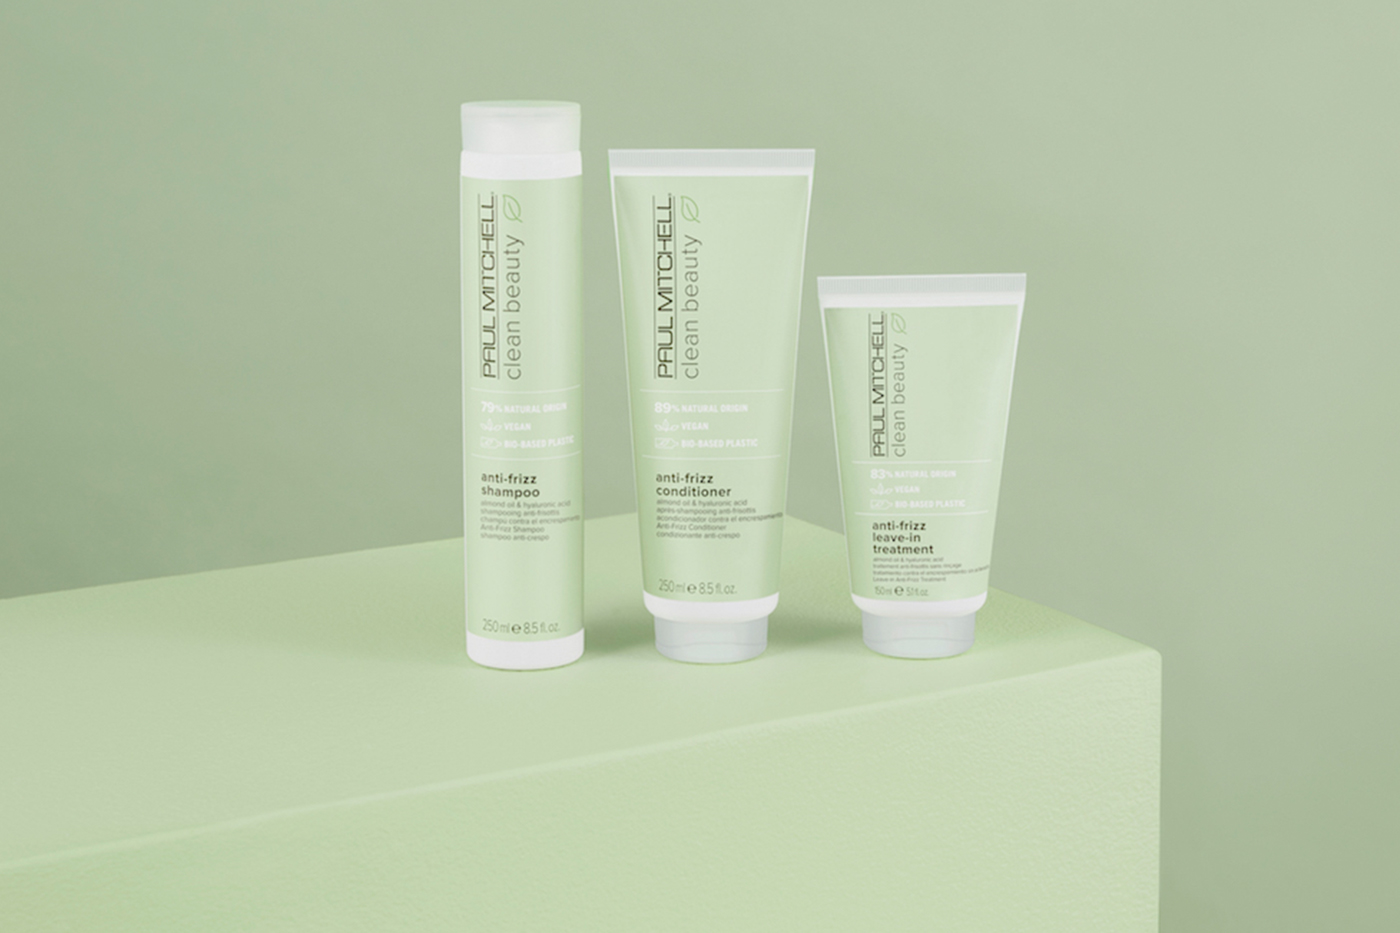 Paul Mitchell launches clean hair-care line